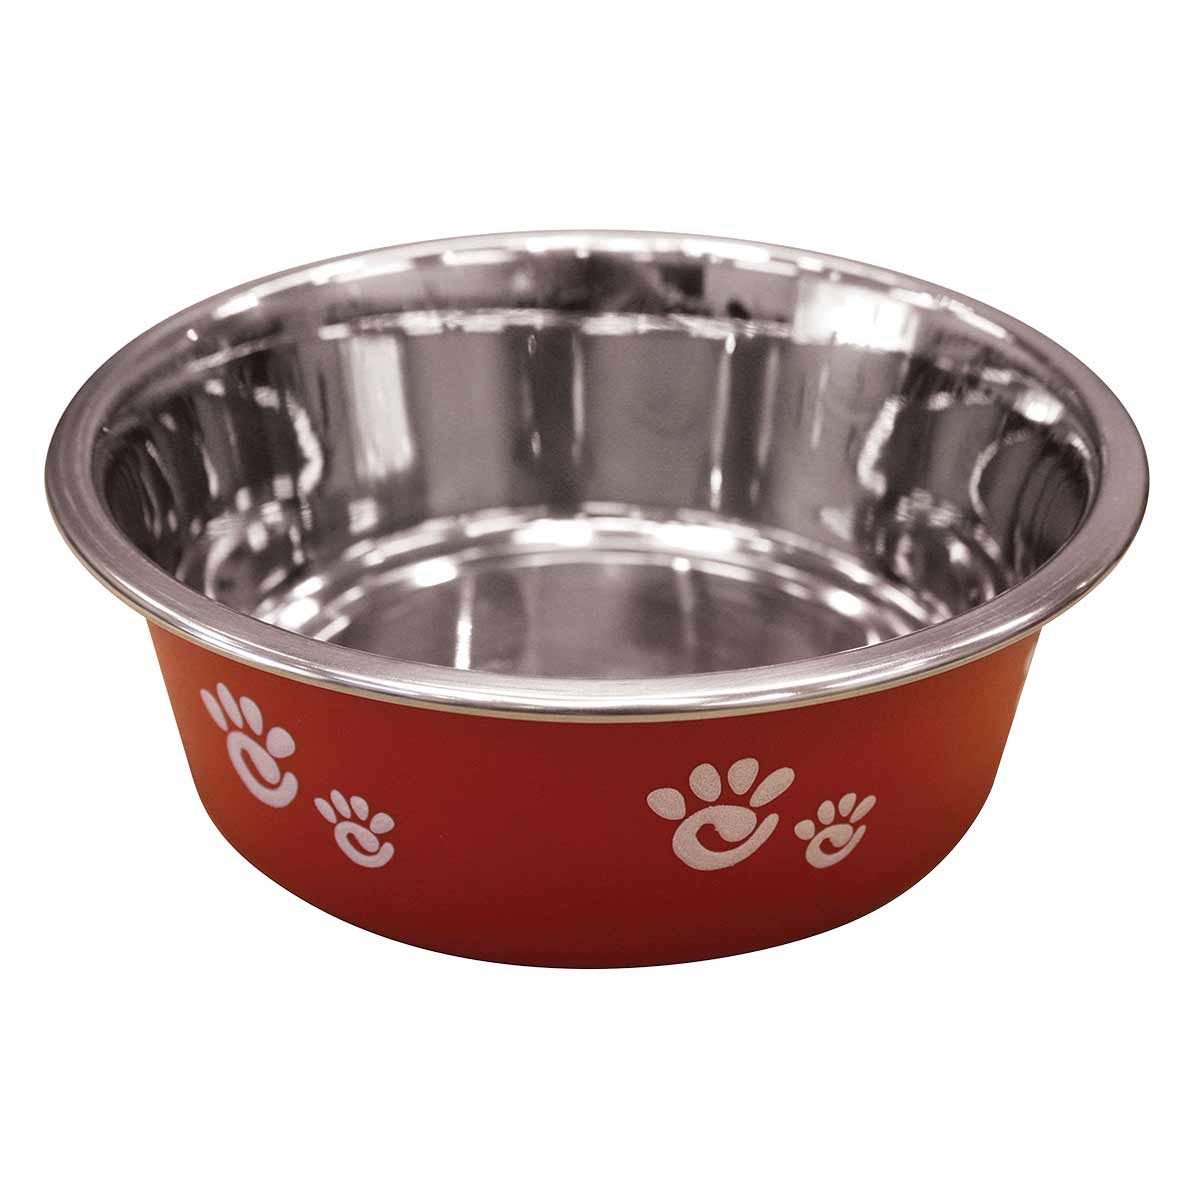 Barcelona Bowl for Dogs - Matte Raspberry 16 oz